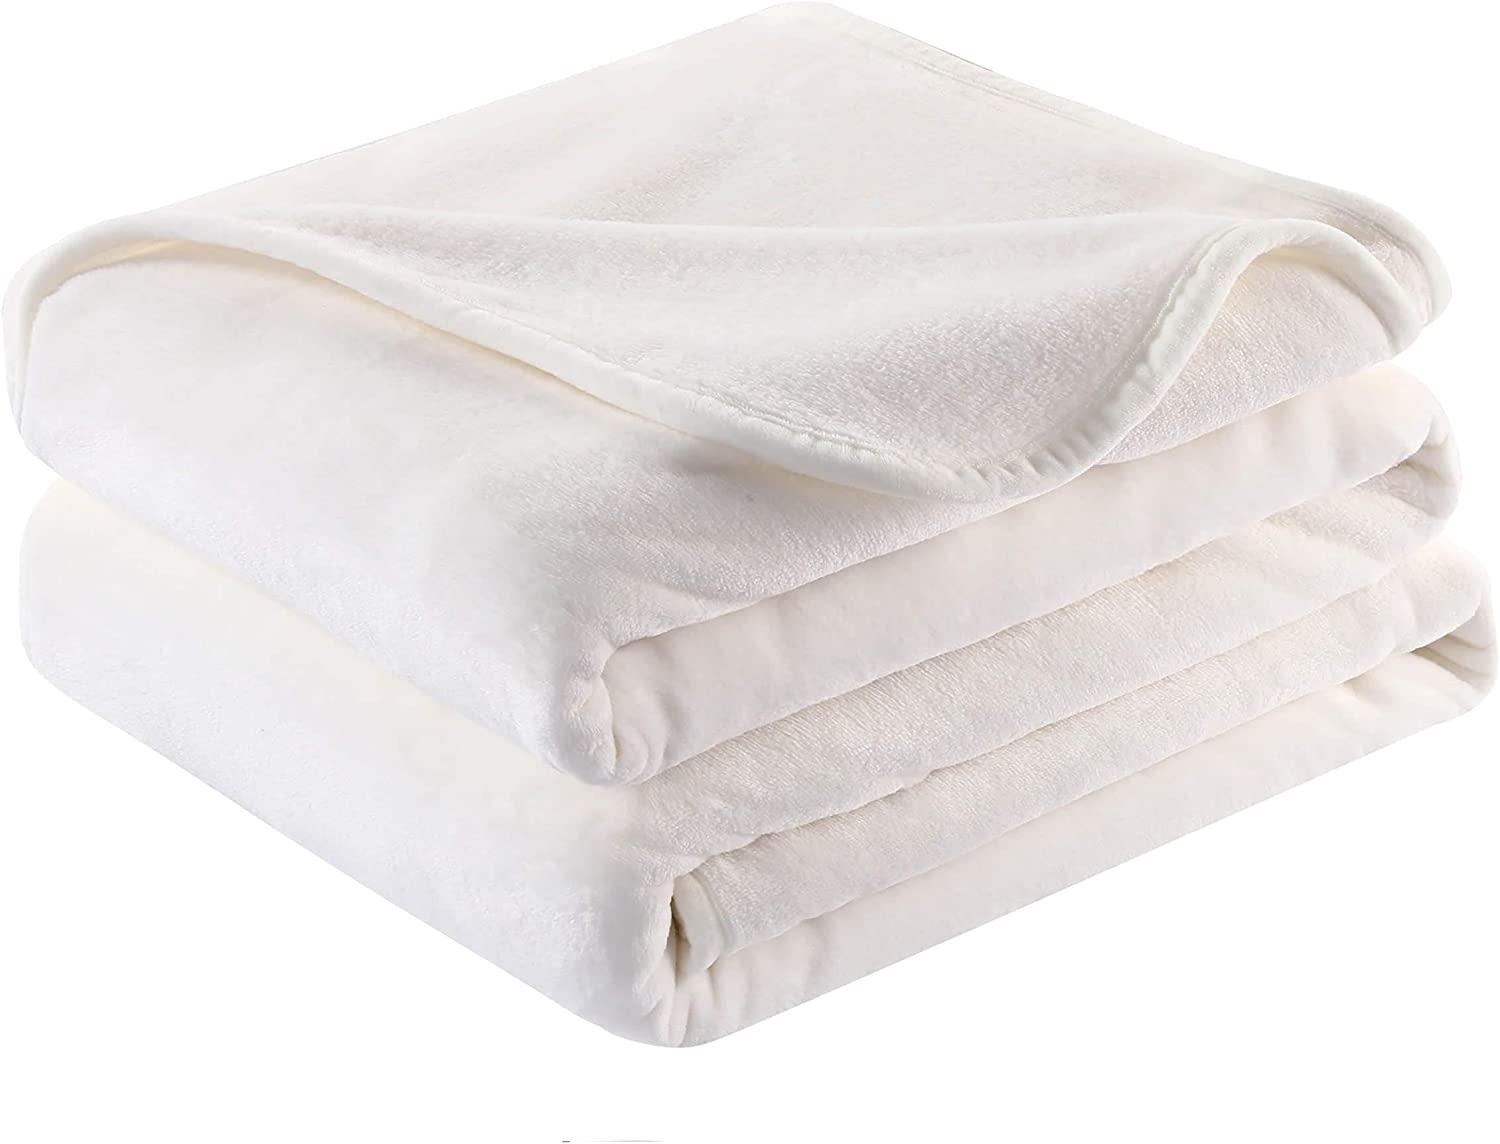 Surii Home Luxury Microfiber Flannel Blanket, Super Soft, Warm, Cozy, Fluffy, and Breathable, Perfect Throws for Bed, Couch, Sofa, for All Season Use. 350GSM Travel Size 50x60 Inches(Cream White)